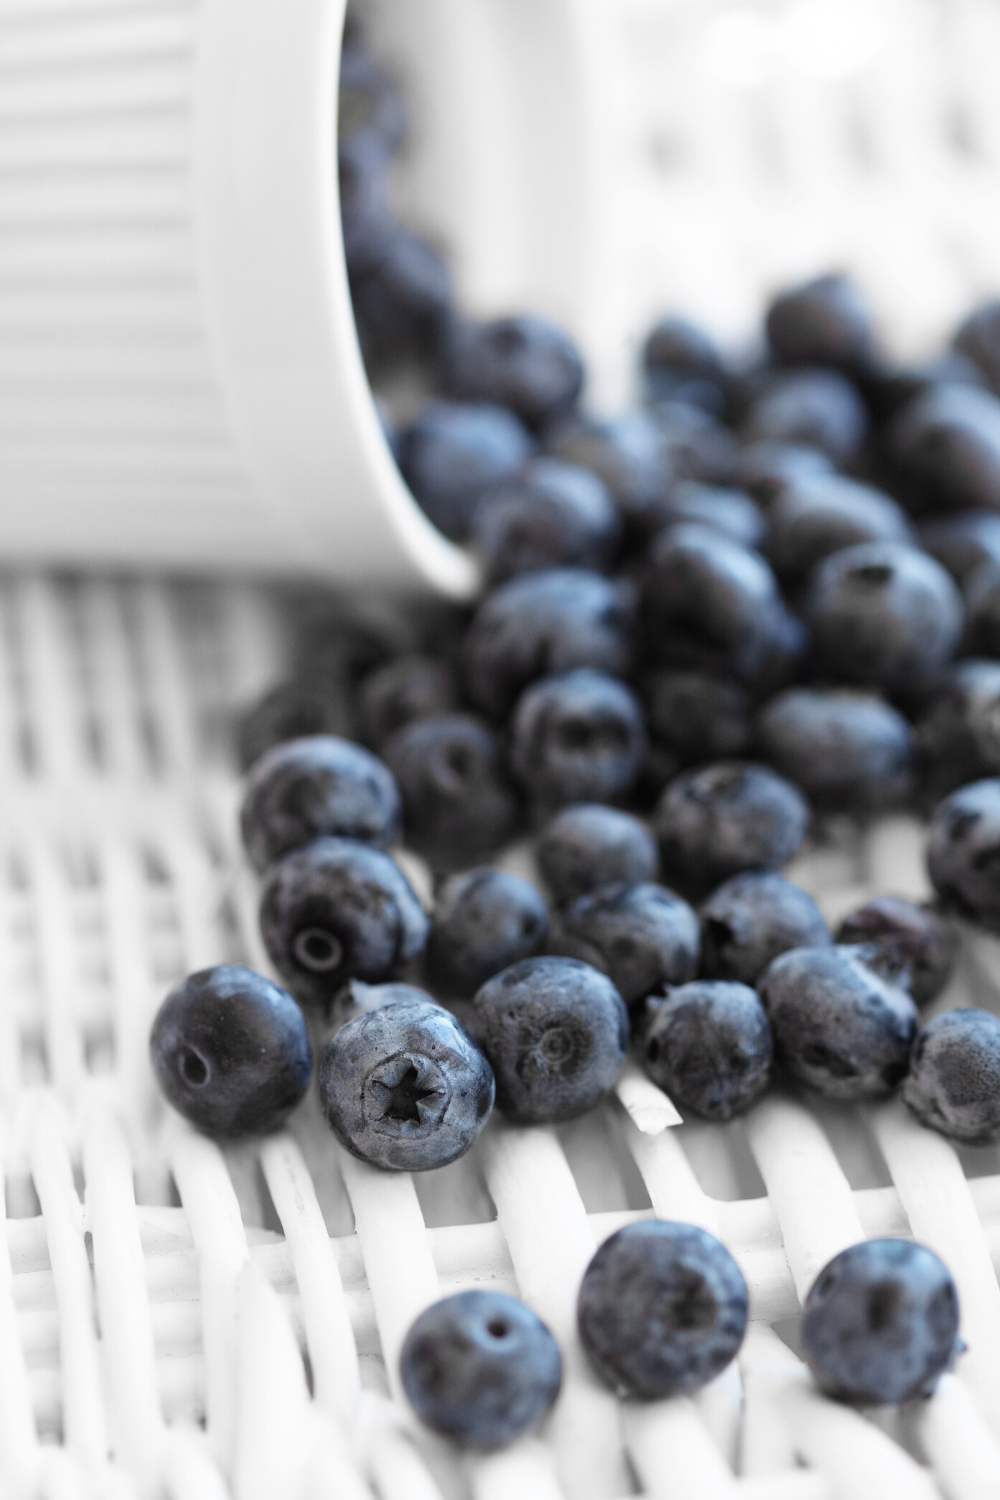 Blueberries are high in antioxidants and make the perfect fruit of choice for your Superfood Smoothie Recipe